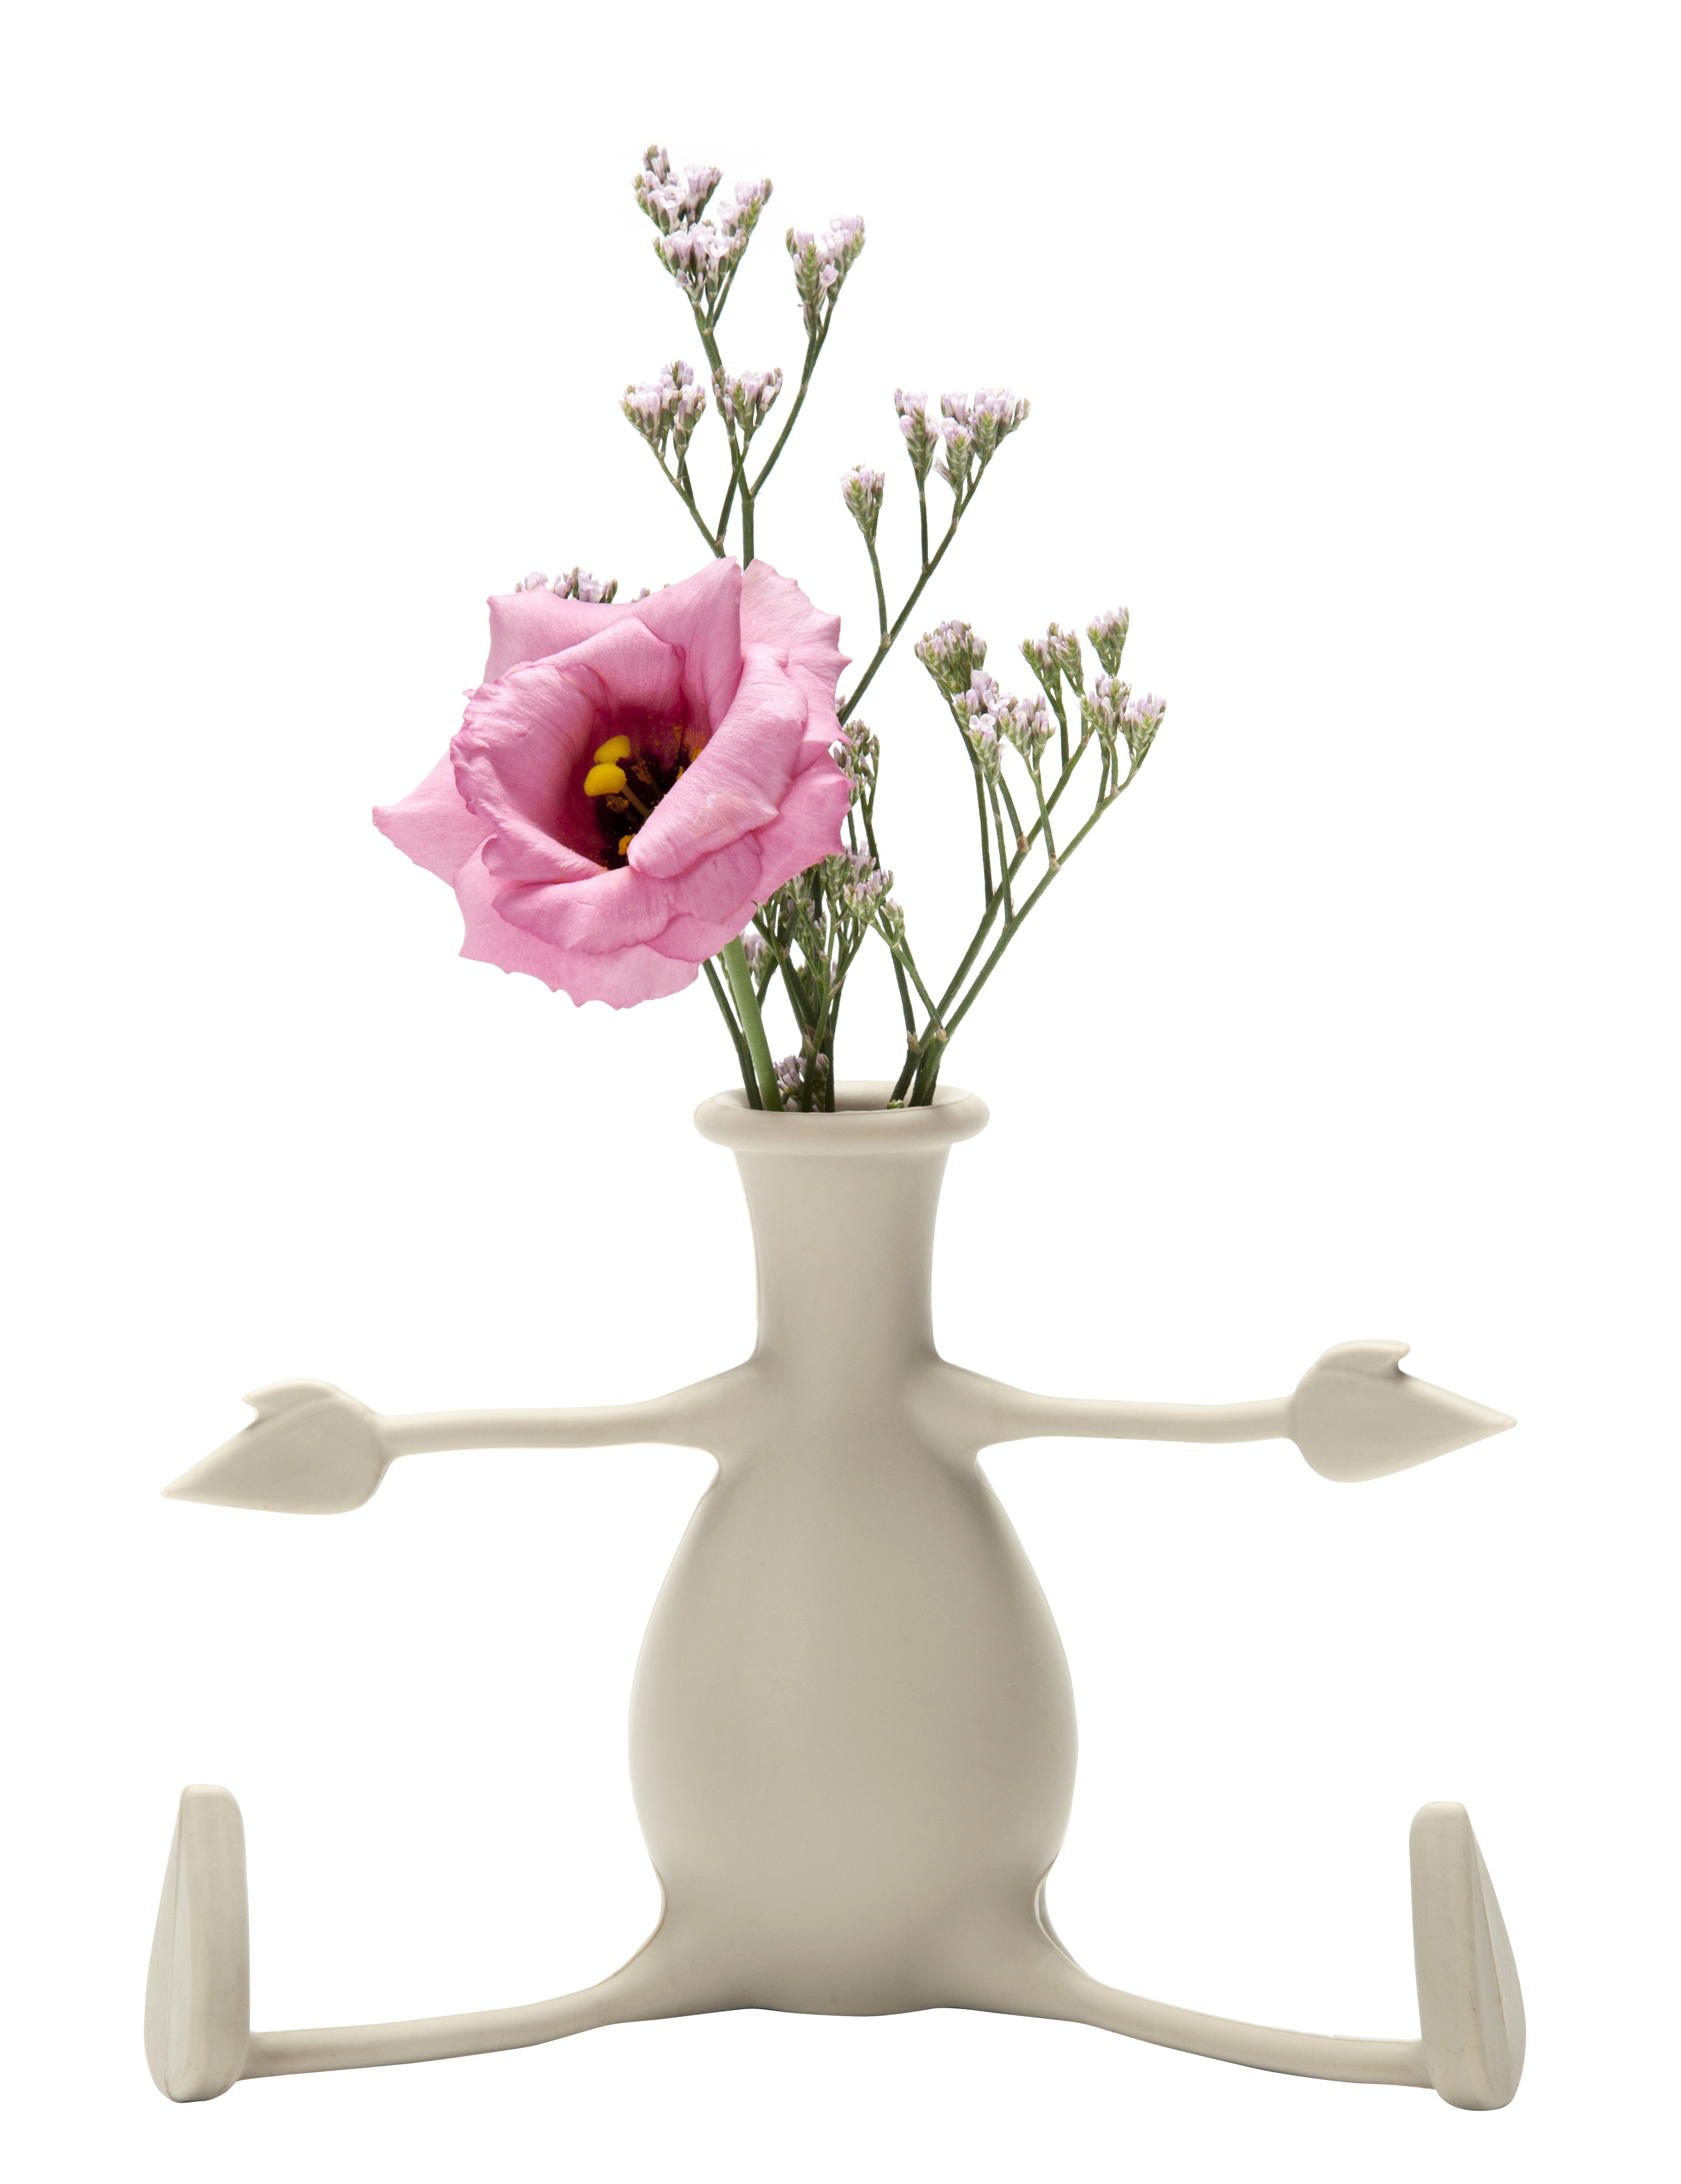 Decoration - Vases - Florino Vase - Silicone by Pa Design - Grey-beige - Silicone